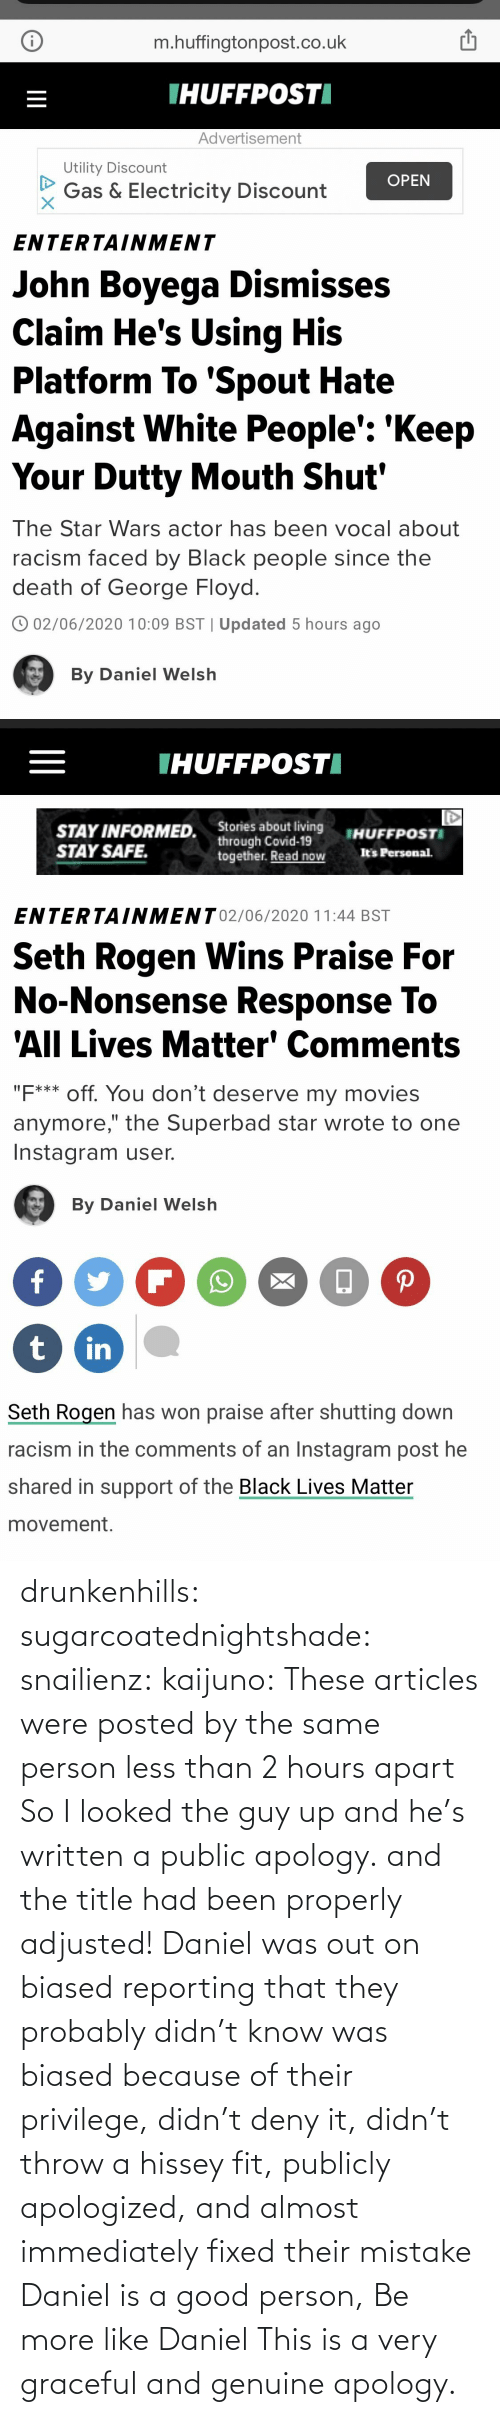 Had: drunkenhills: sugarcoatednightshade:   snailienz:  kaijuno: These articles were posted by the same person less than 2 hours apart    So I looked the guy up and he's written a public apology. and the title had been properly adjusted!    Daniel was out on biased reporting that they probably didn't know was biased because of their privilege, didn't deny it, didn't throw a hissey fit, publicly apologized, and almost immediately fixed their mistake Daniel is a good person, Be more like Daniel     This is a very graceful and genuine apology.